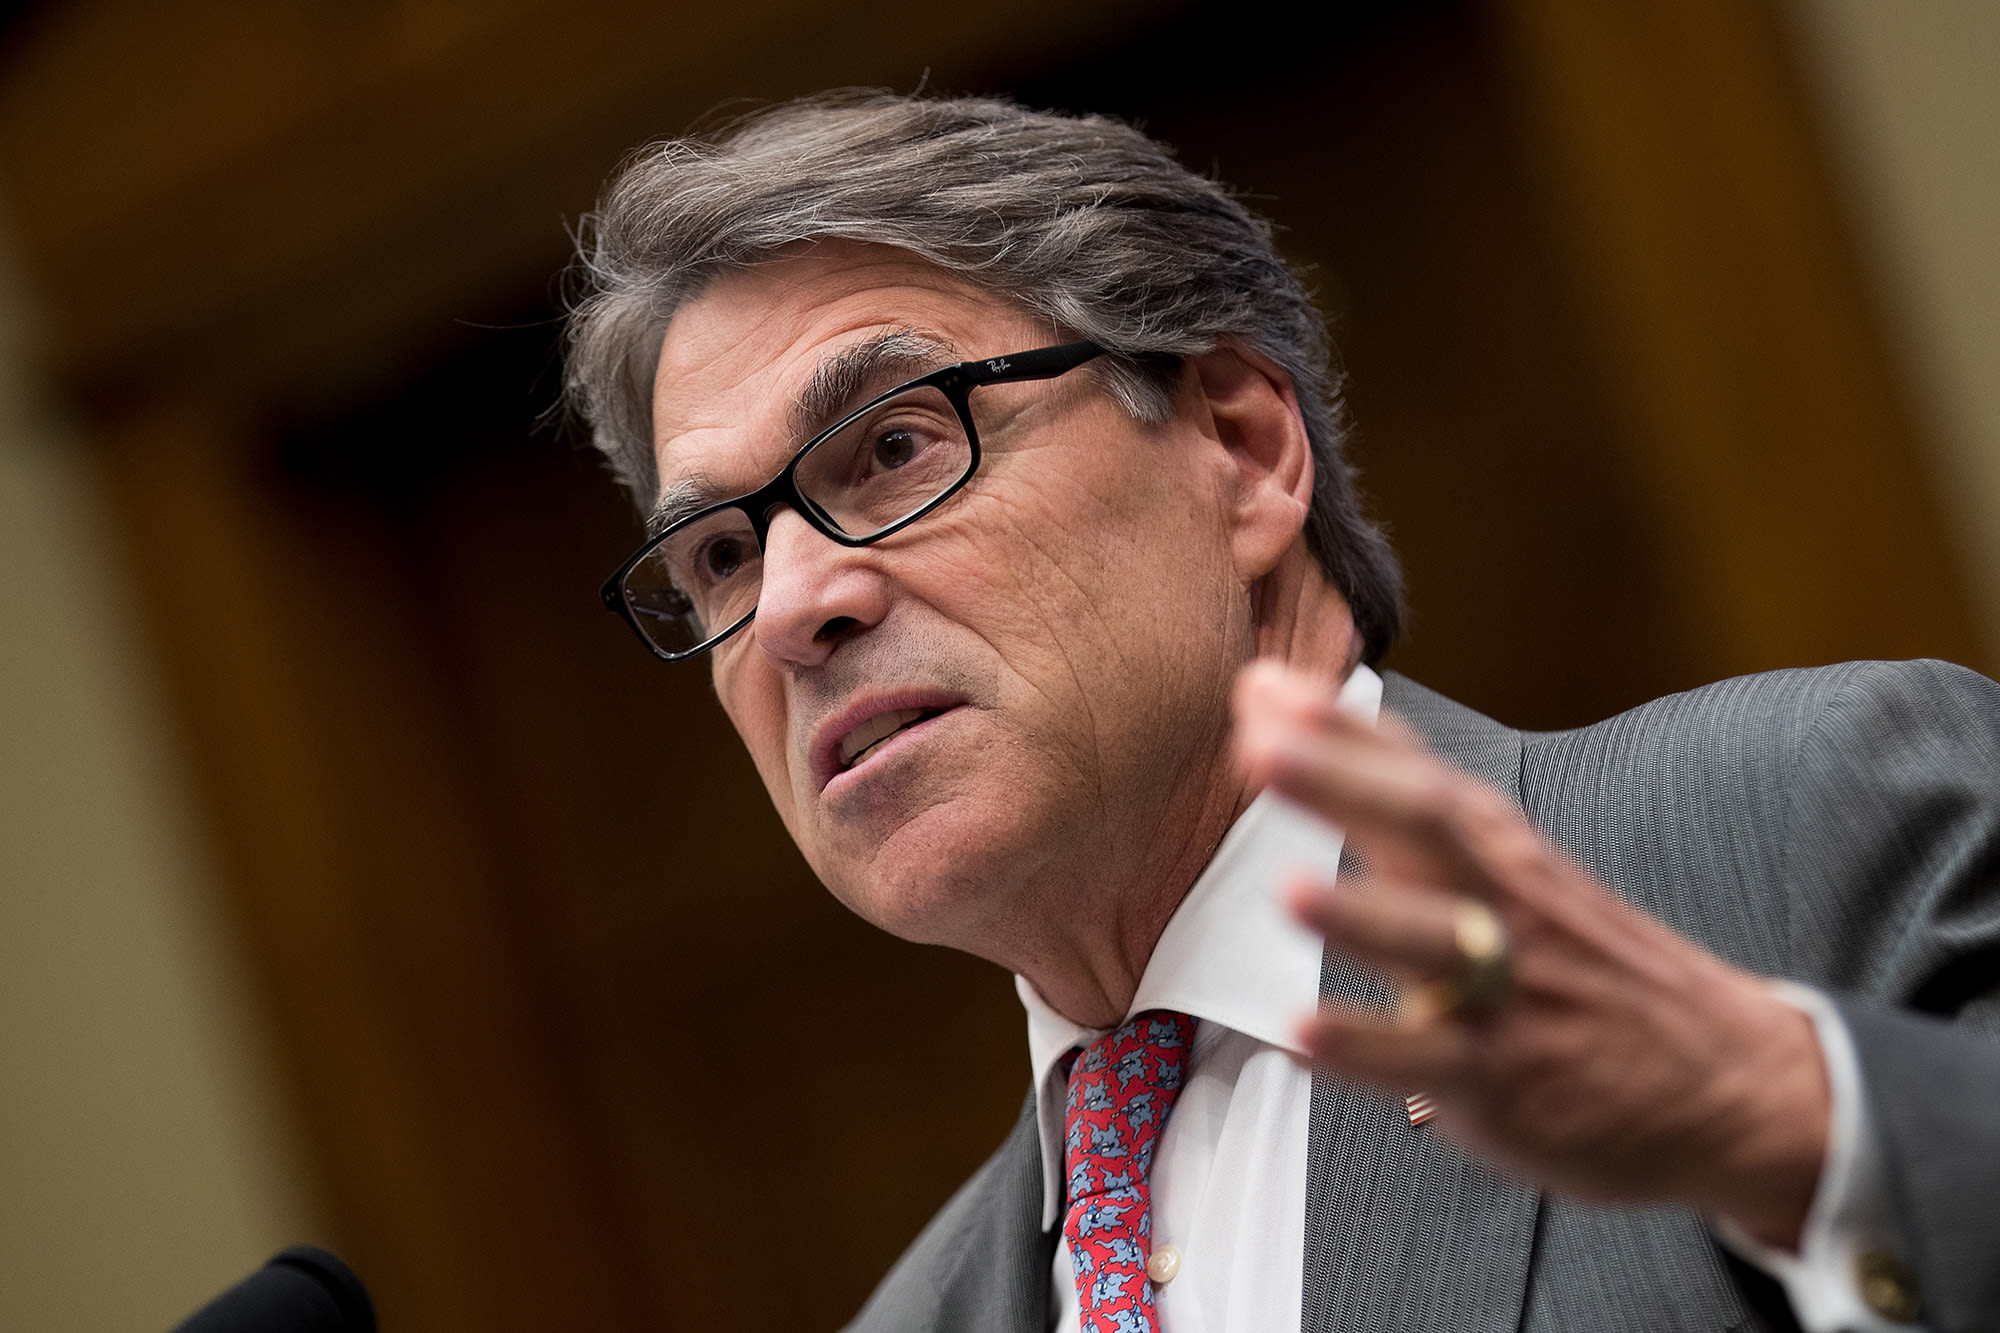 Energy Secretary Perry expects a 'coalition effort' to put a stop to Iran's 'malign activities'